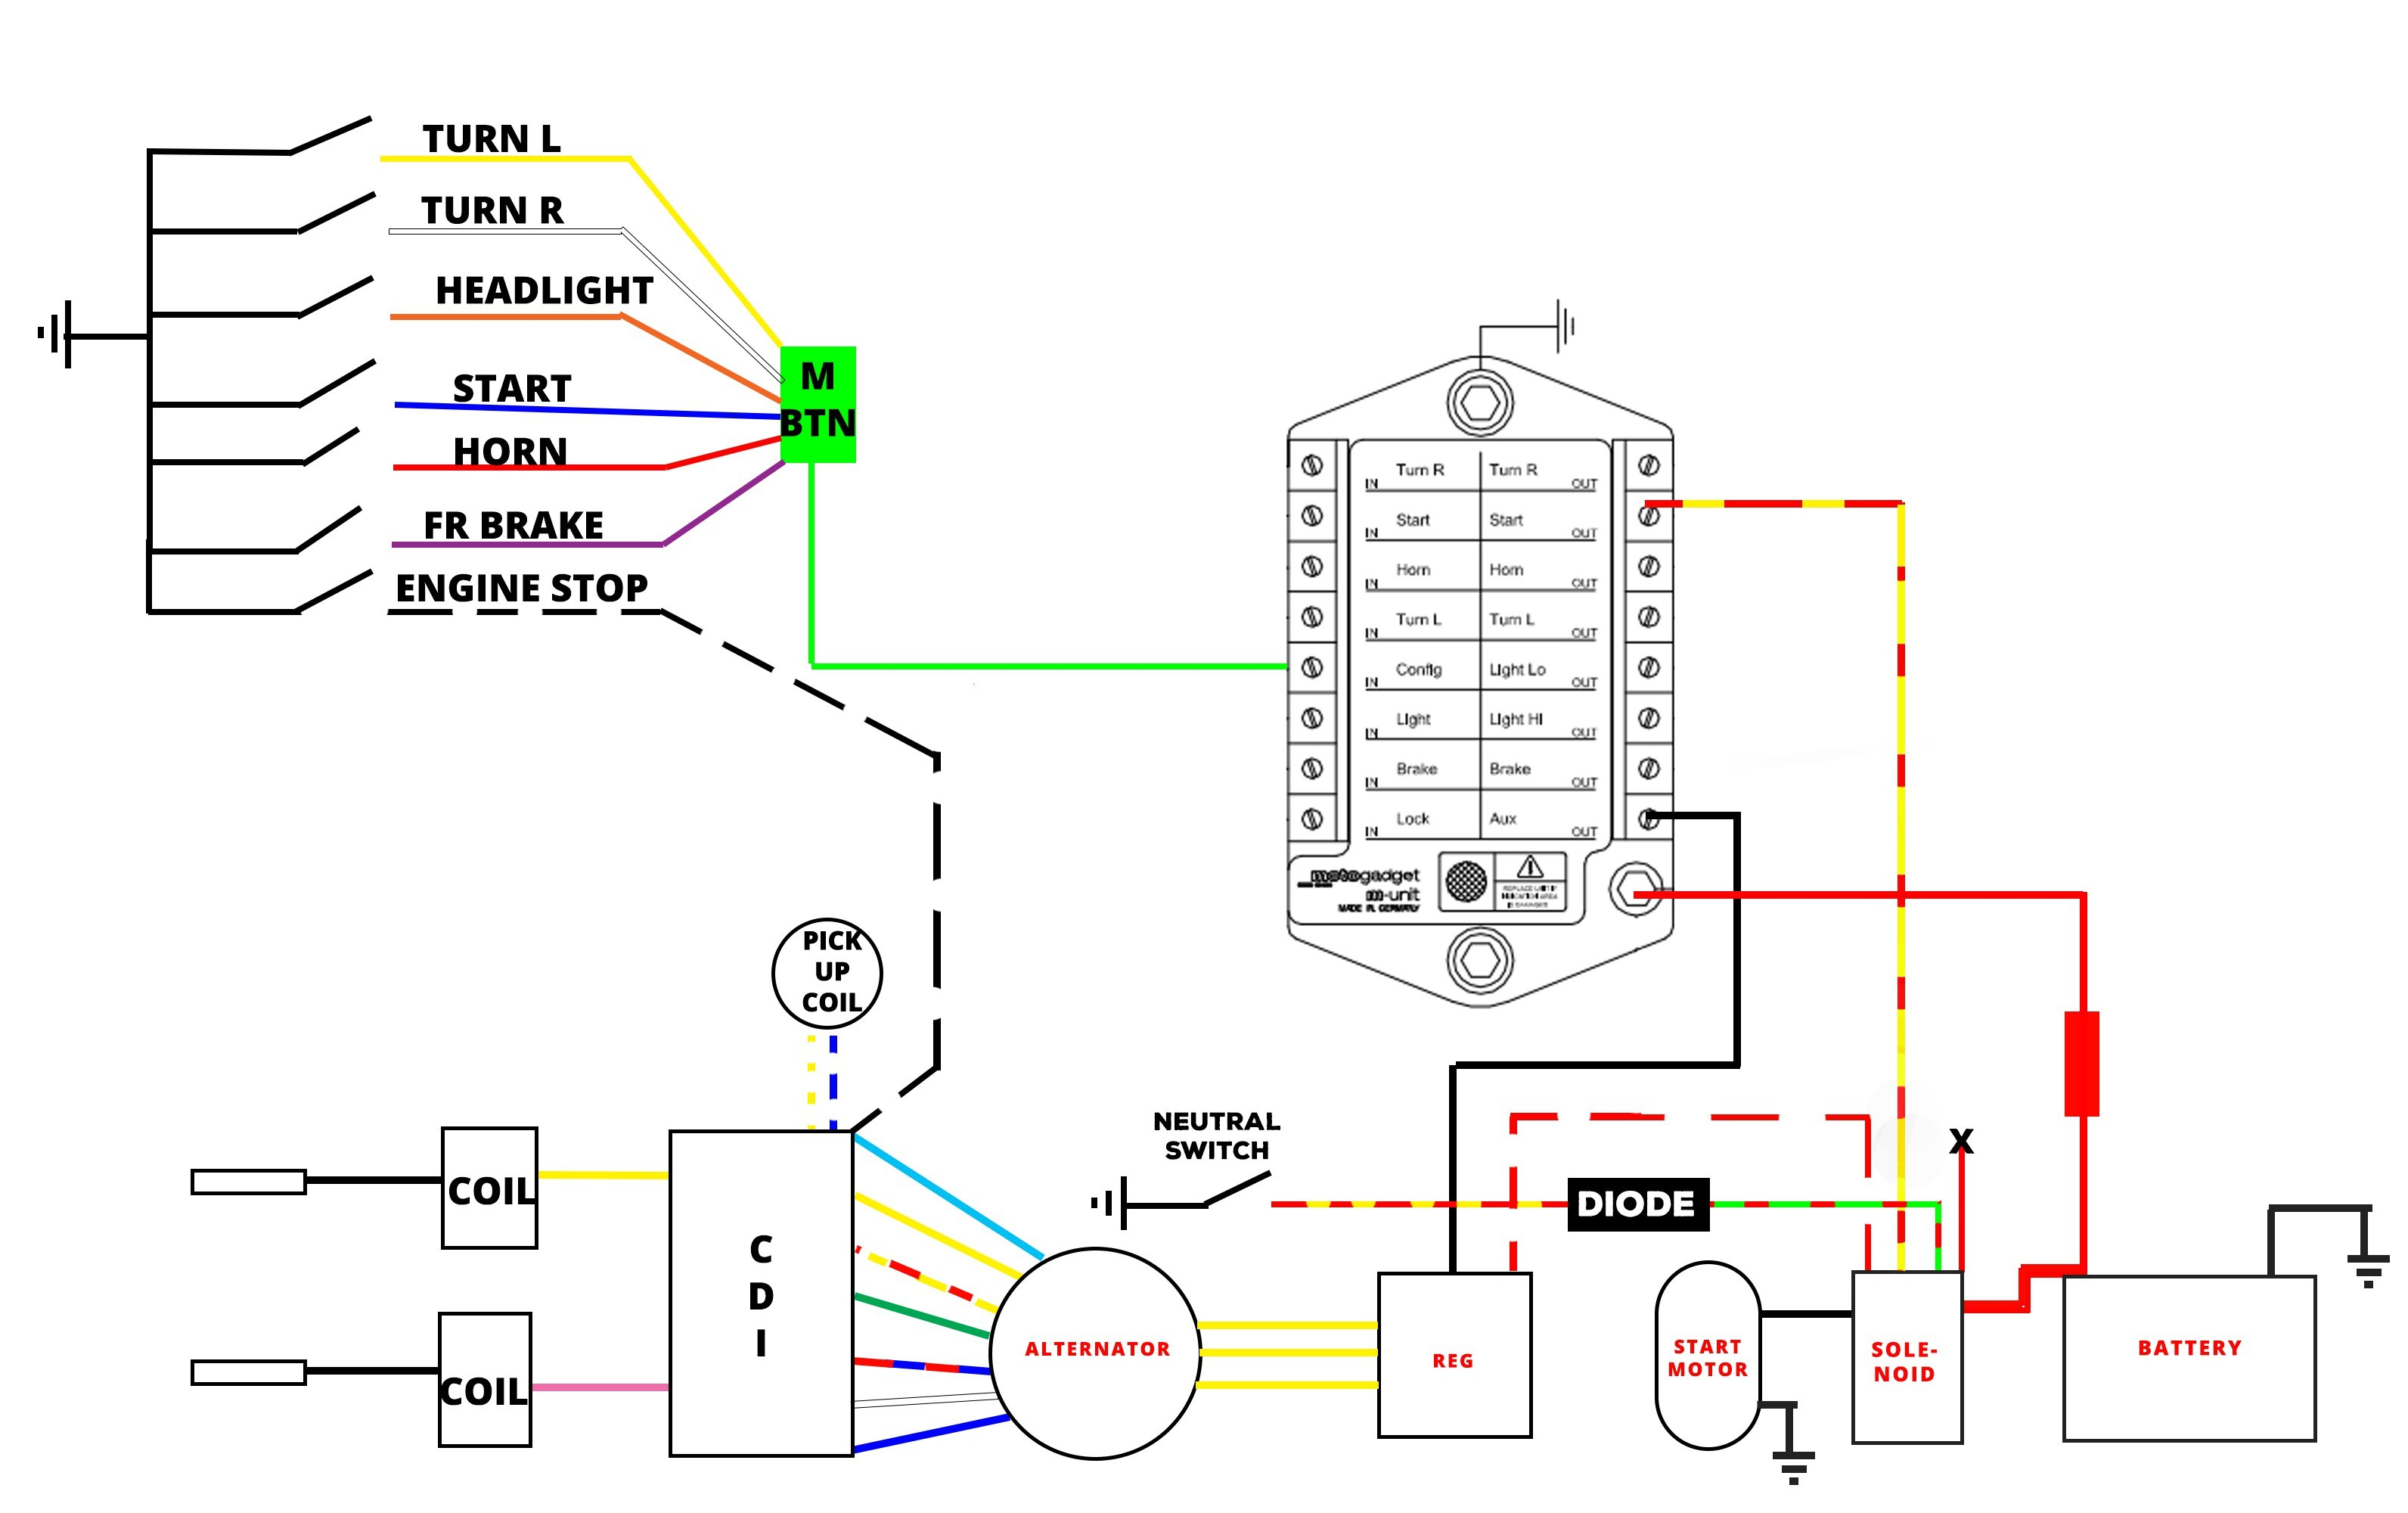 Rigmaster Apu Wiring Diagram from mainetreasurechest.com